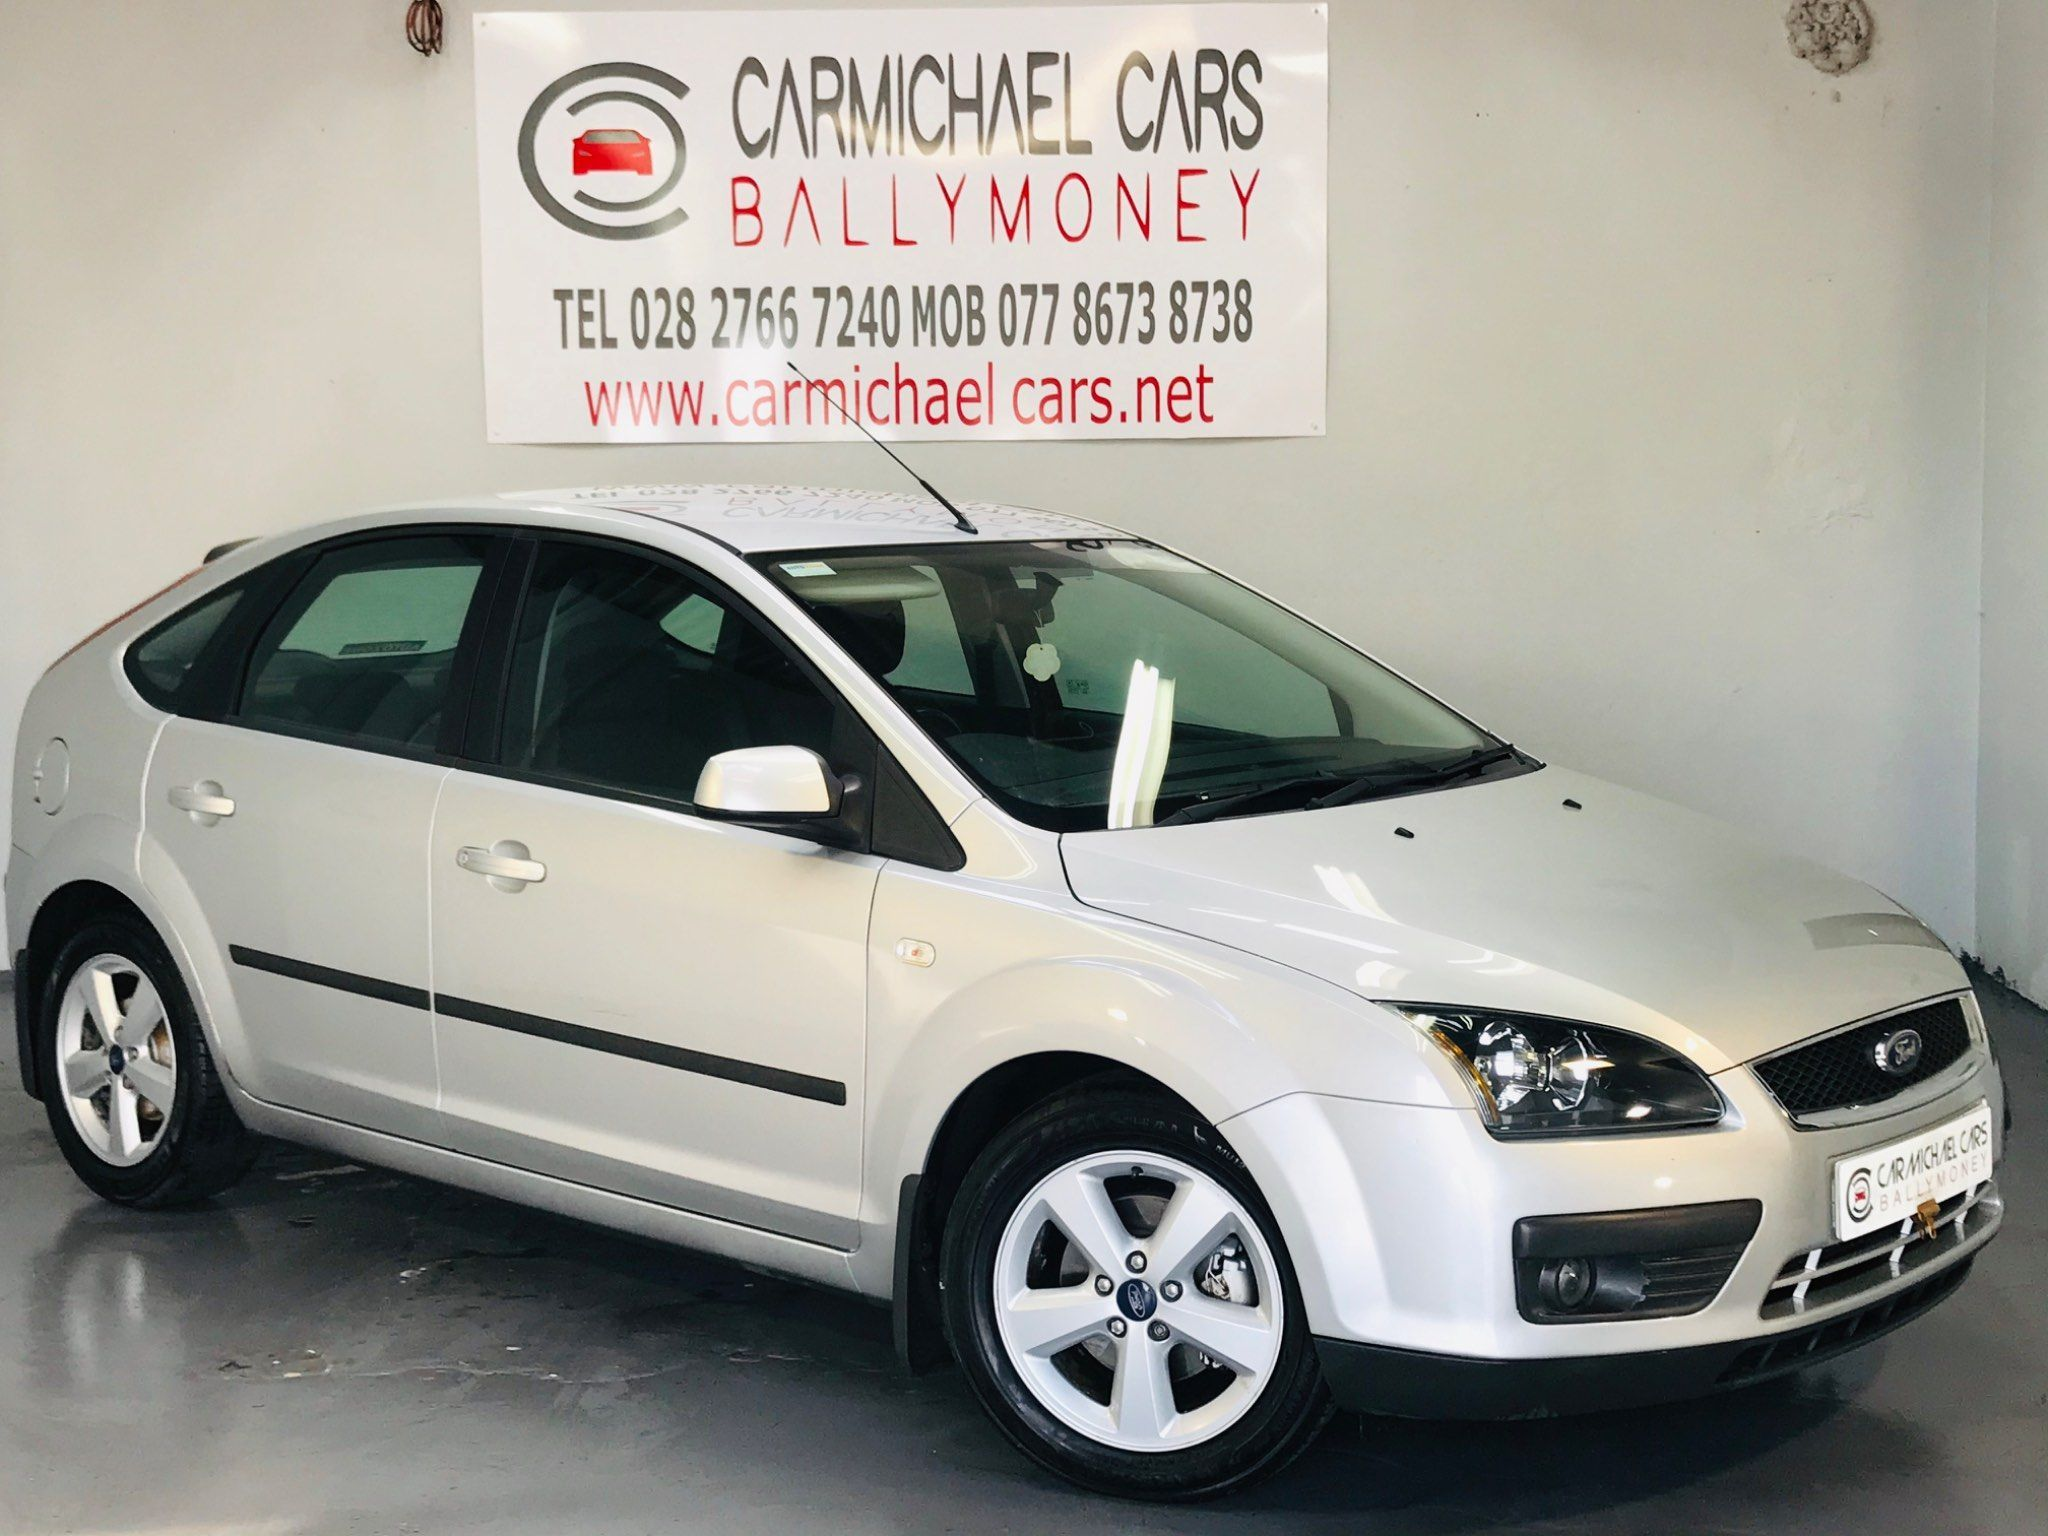 2007 FORD Focus 1.6 Zetec Climate Petrol Manual SILVER, 76K, – Carmichael Cars Ballymoney full